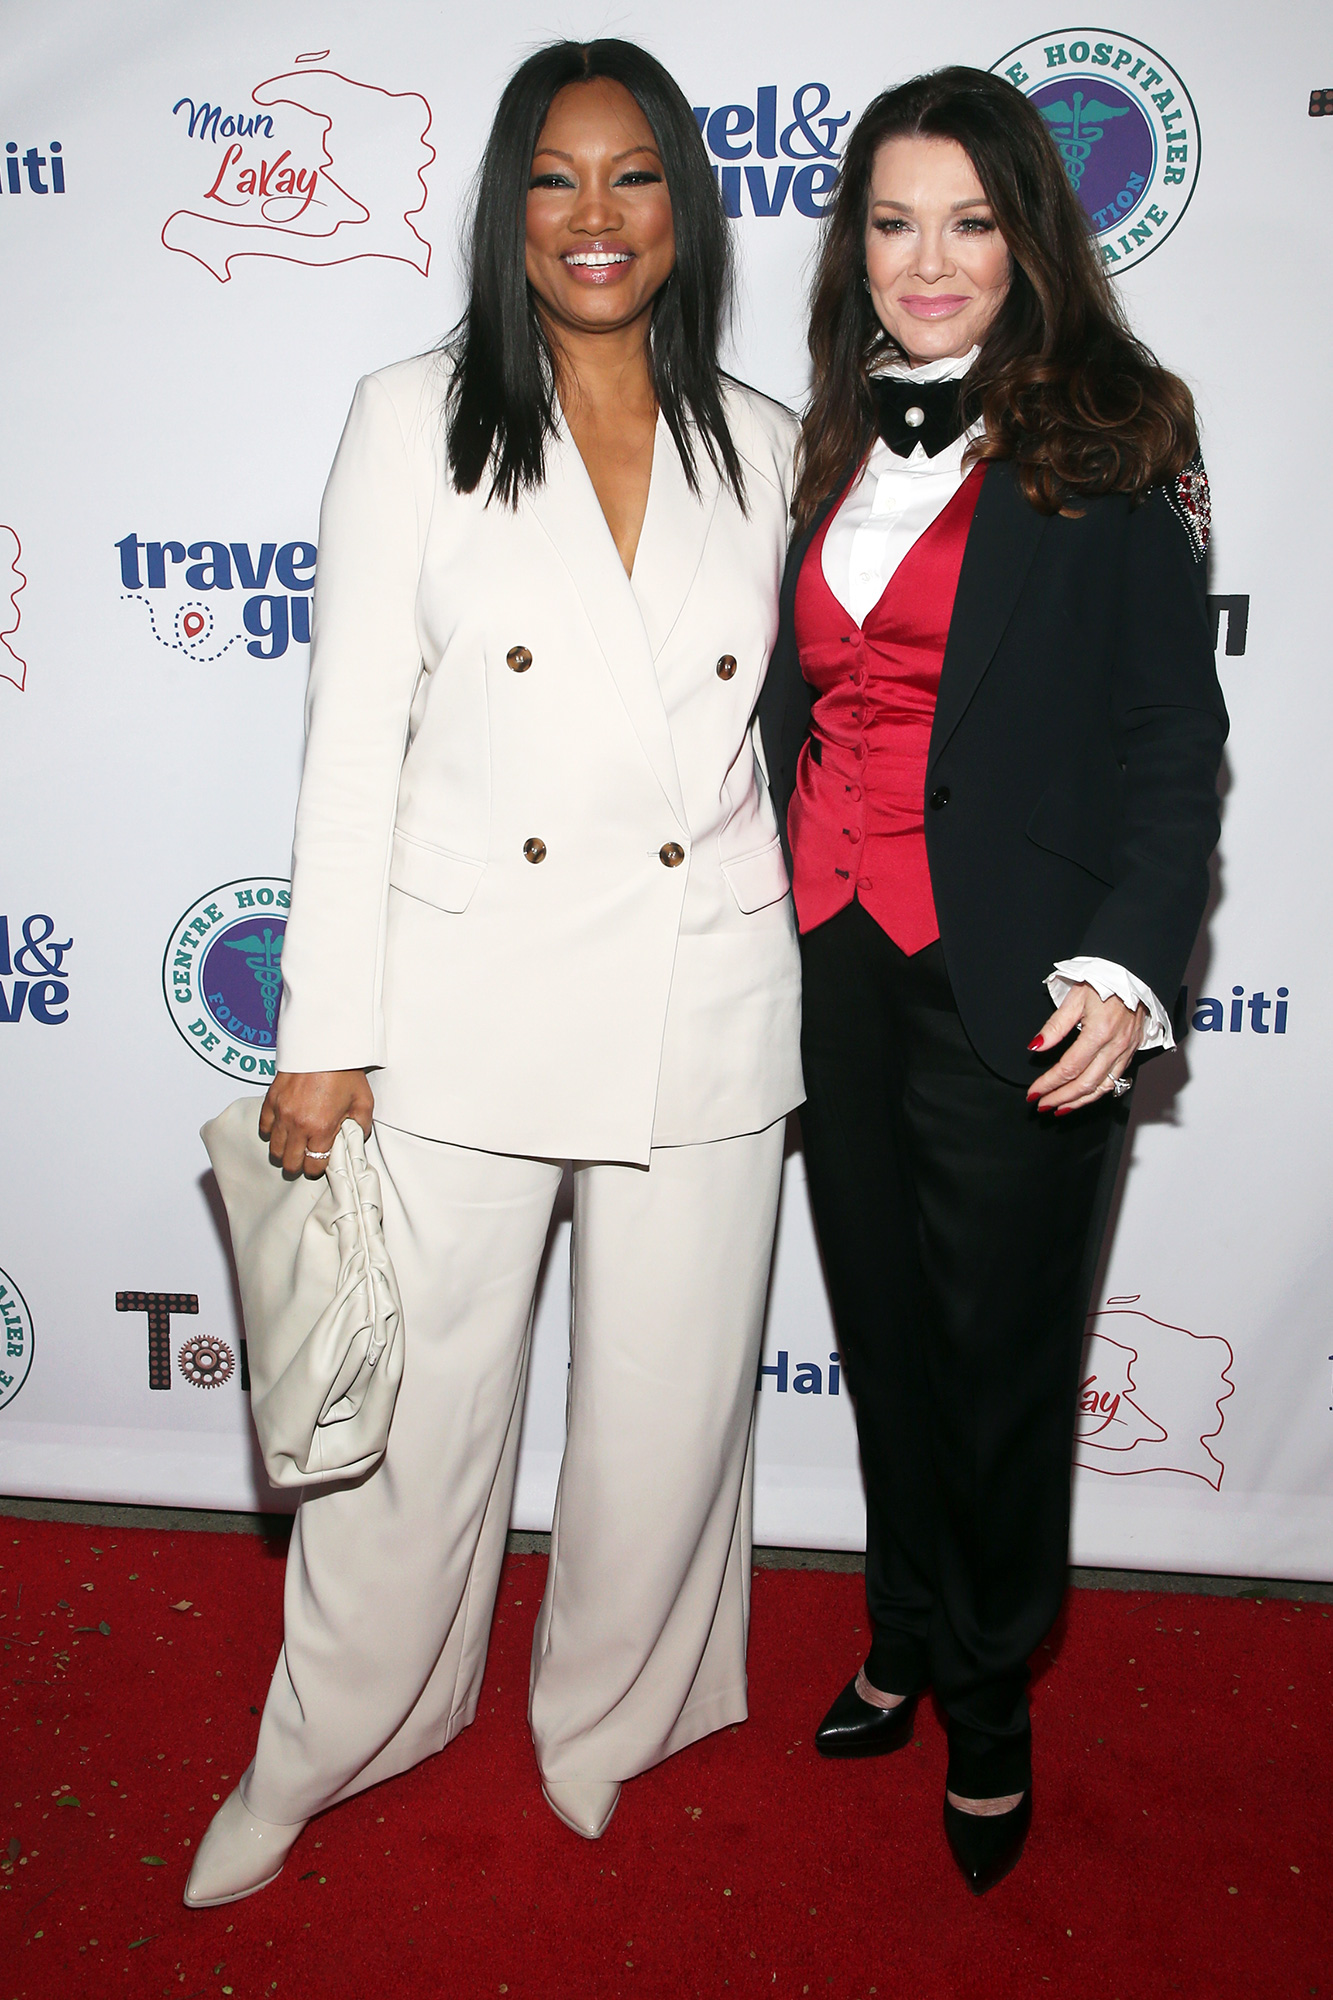 Garcelle Beauvais and Lisa Vanderpump at Travel & Give's 4th Annual Travel With A Purpose Fundraiser at Tom Tom in West Hollywood, California on October 11, 2021.